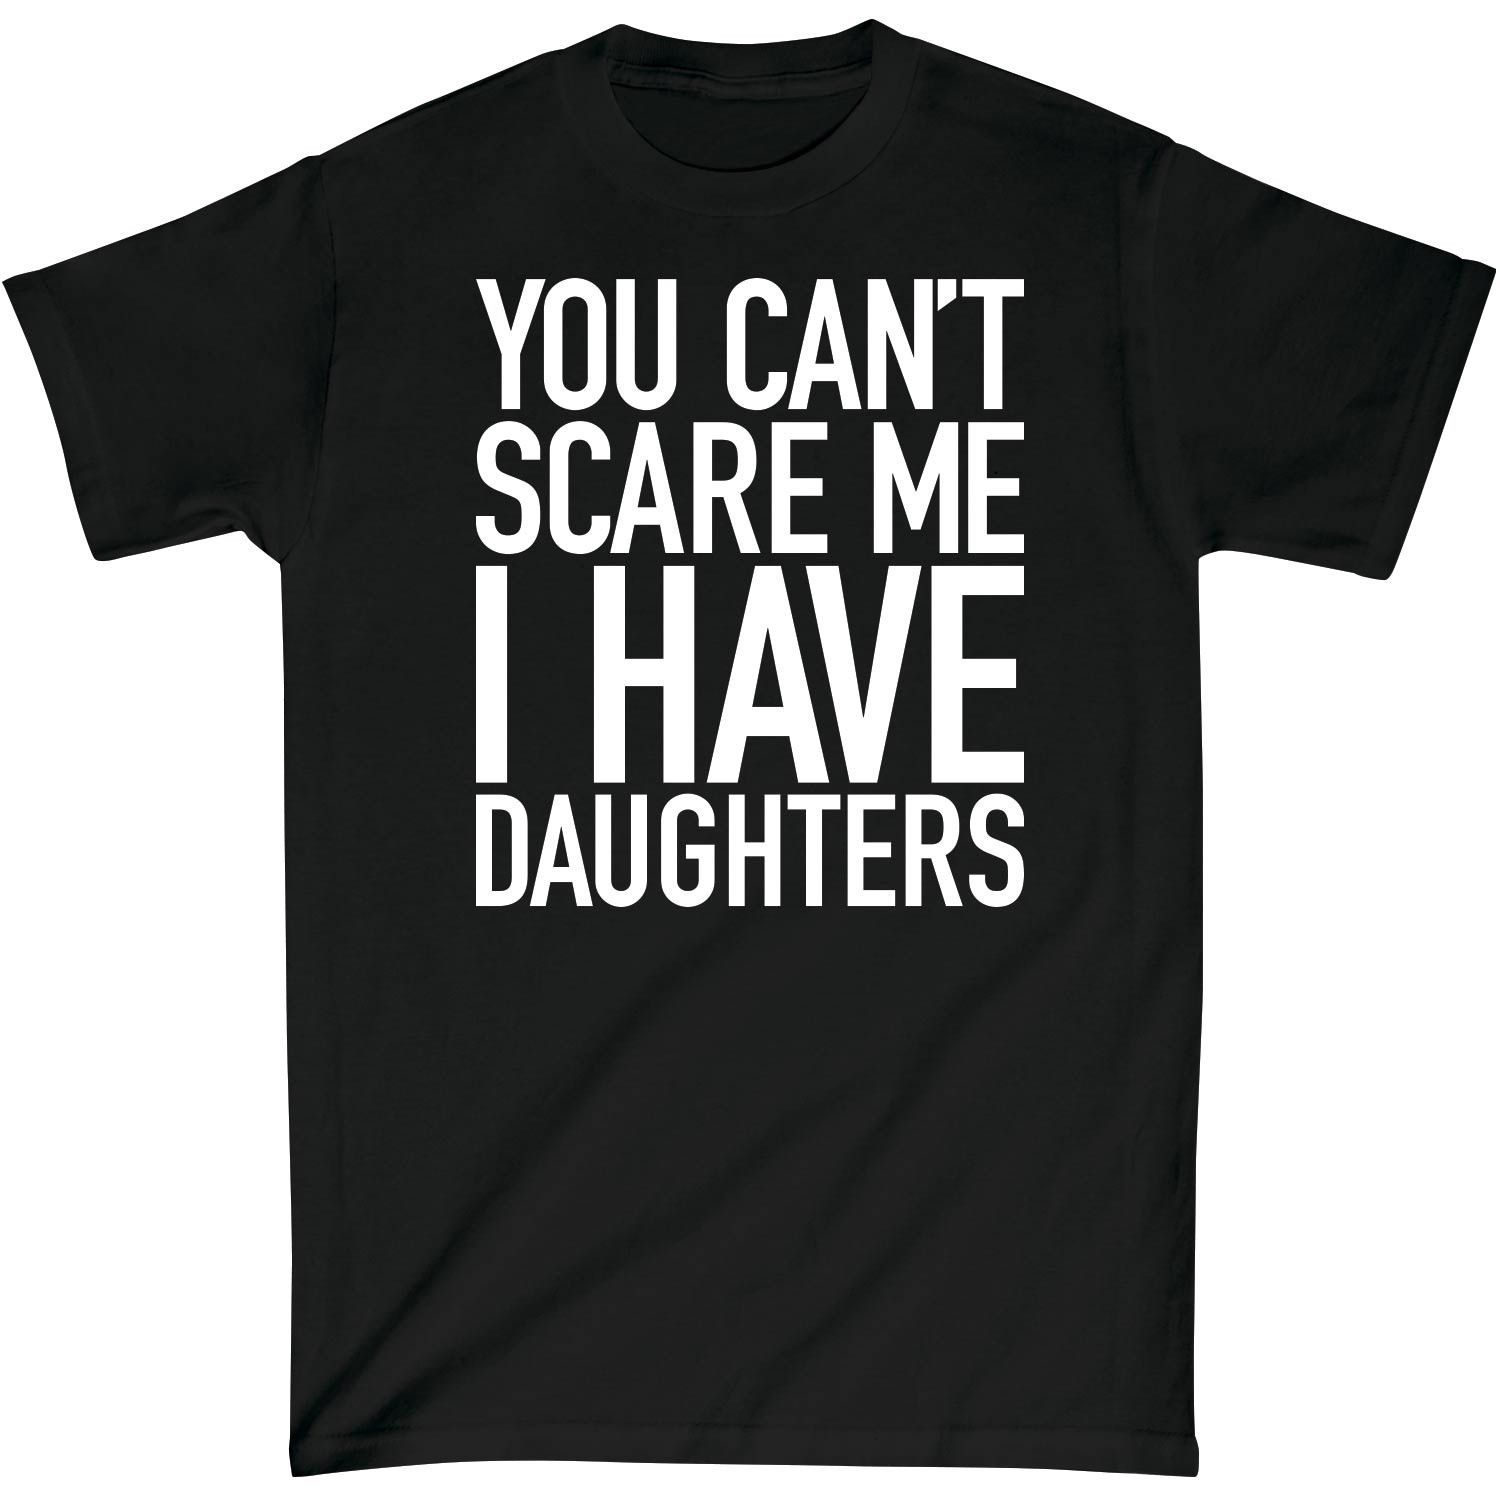 You Can't Scare Me I Have Daughters Mens Tee. Funnyreat Father's Day gifts from the kids for the father in the family who has many daughters. #fathersdaygifts